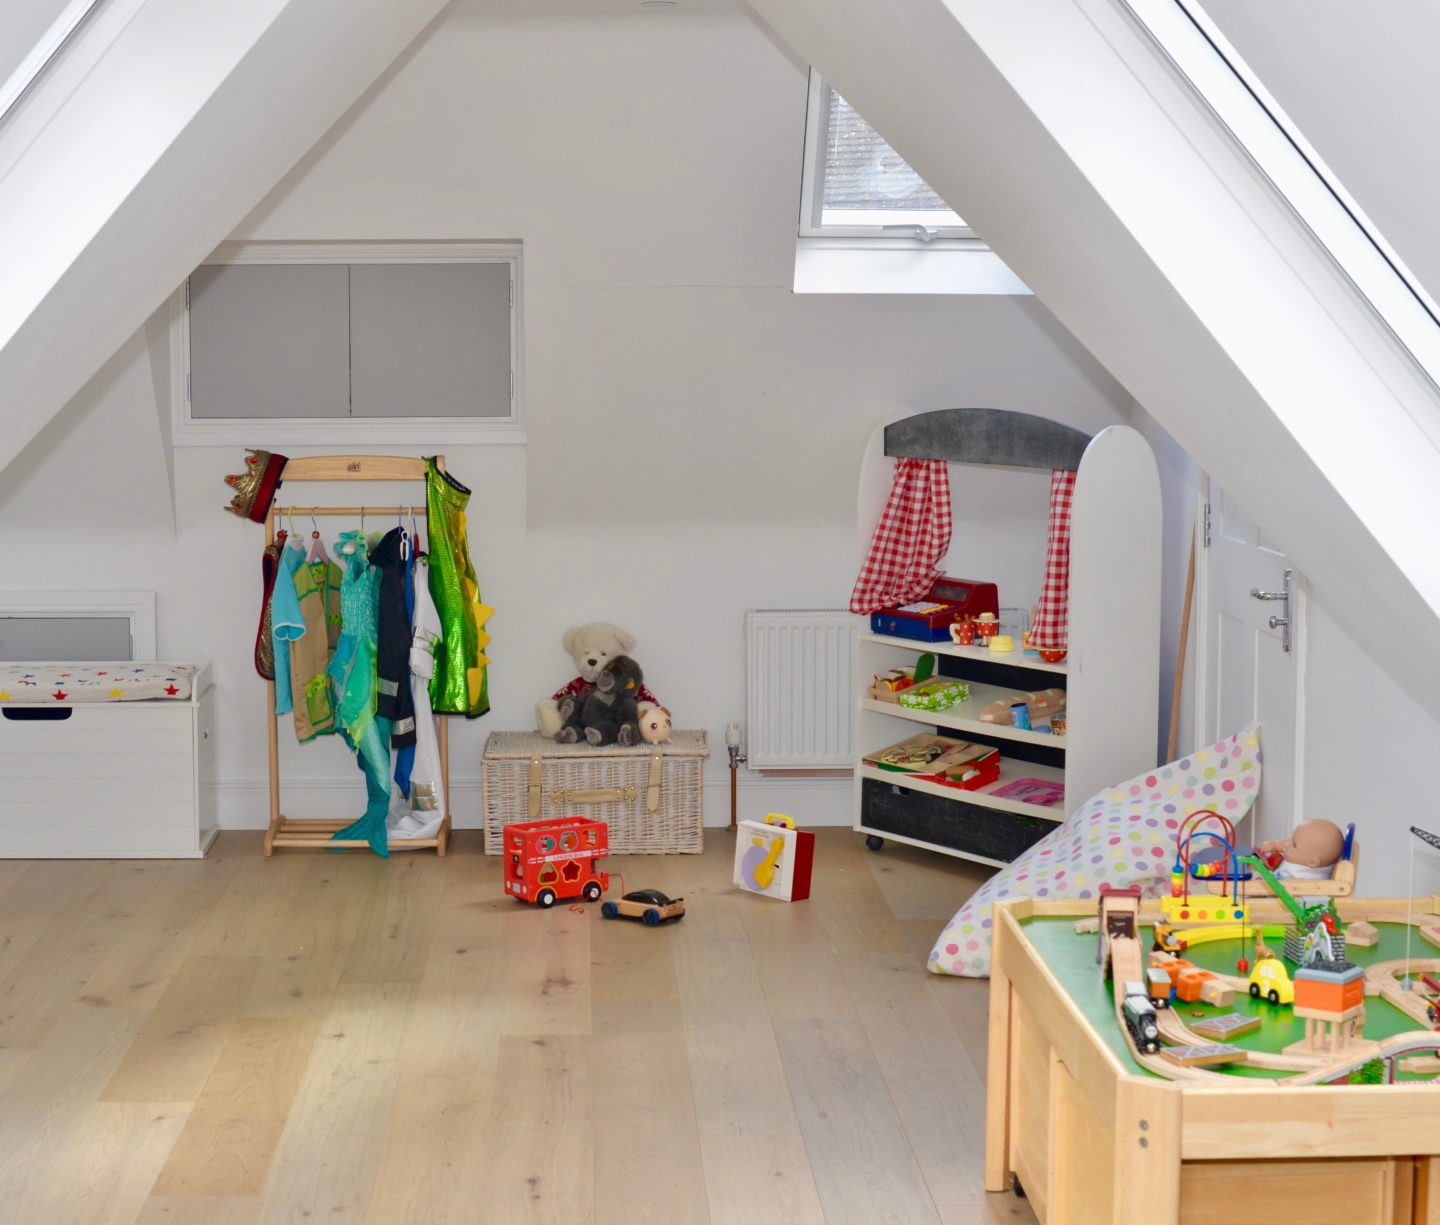 How to use VELUX roof windows in a loft extension to create a children's playroom